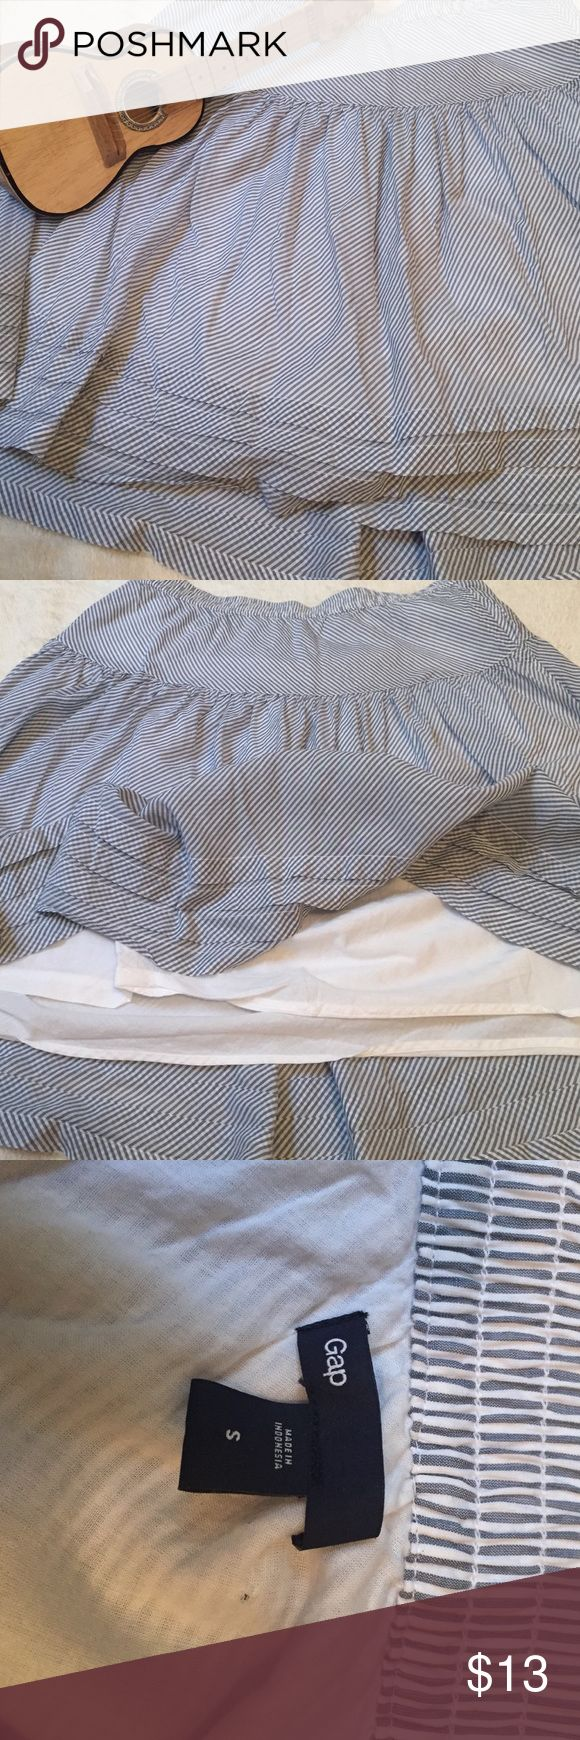 Gap skirt Fun flared skirt. It's a size small but it fits more like a medium. Great condition, never worn.Lined and has elastic waist... And has pockets! Gap Skirts A-Line or Full